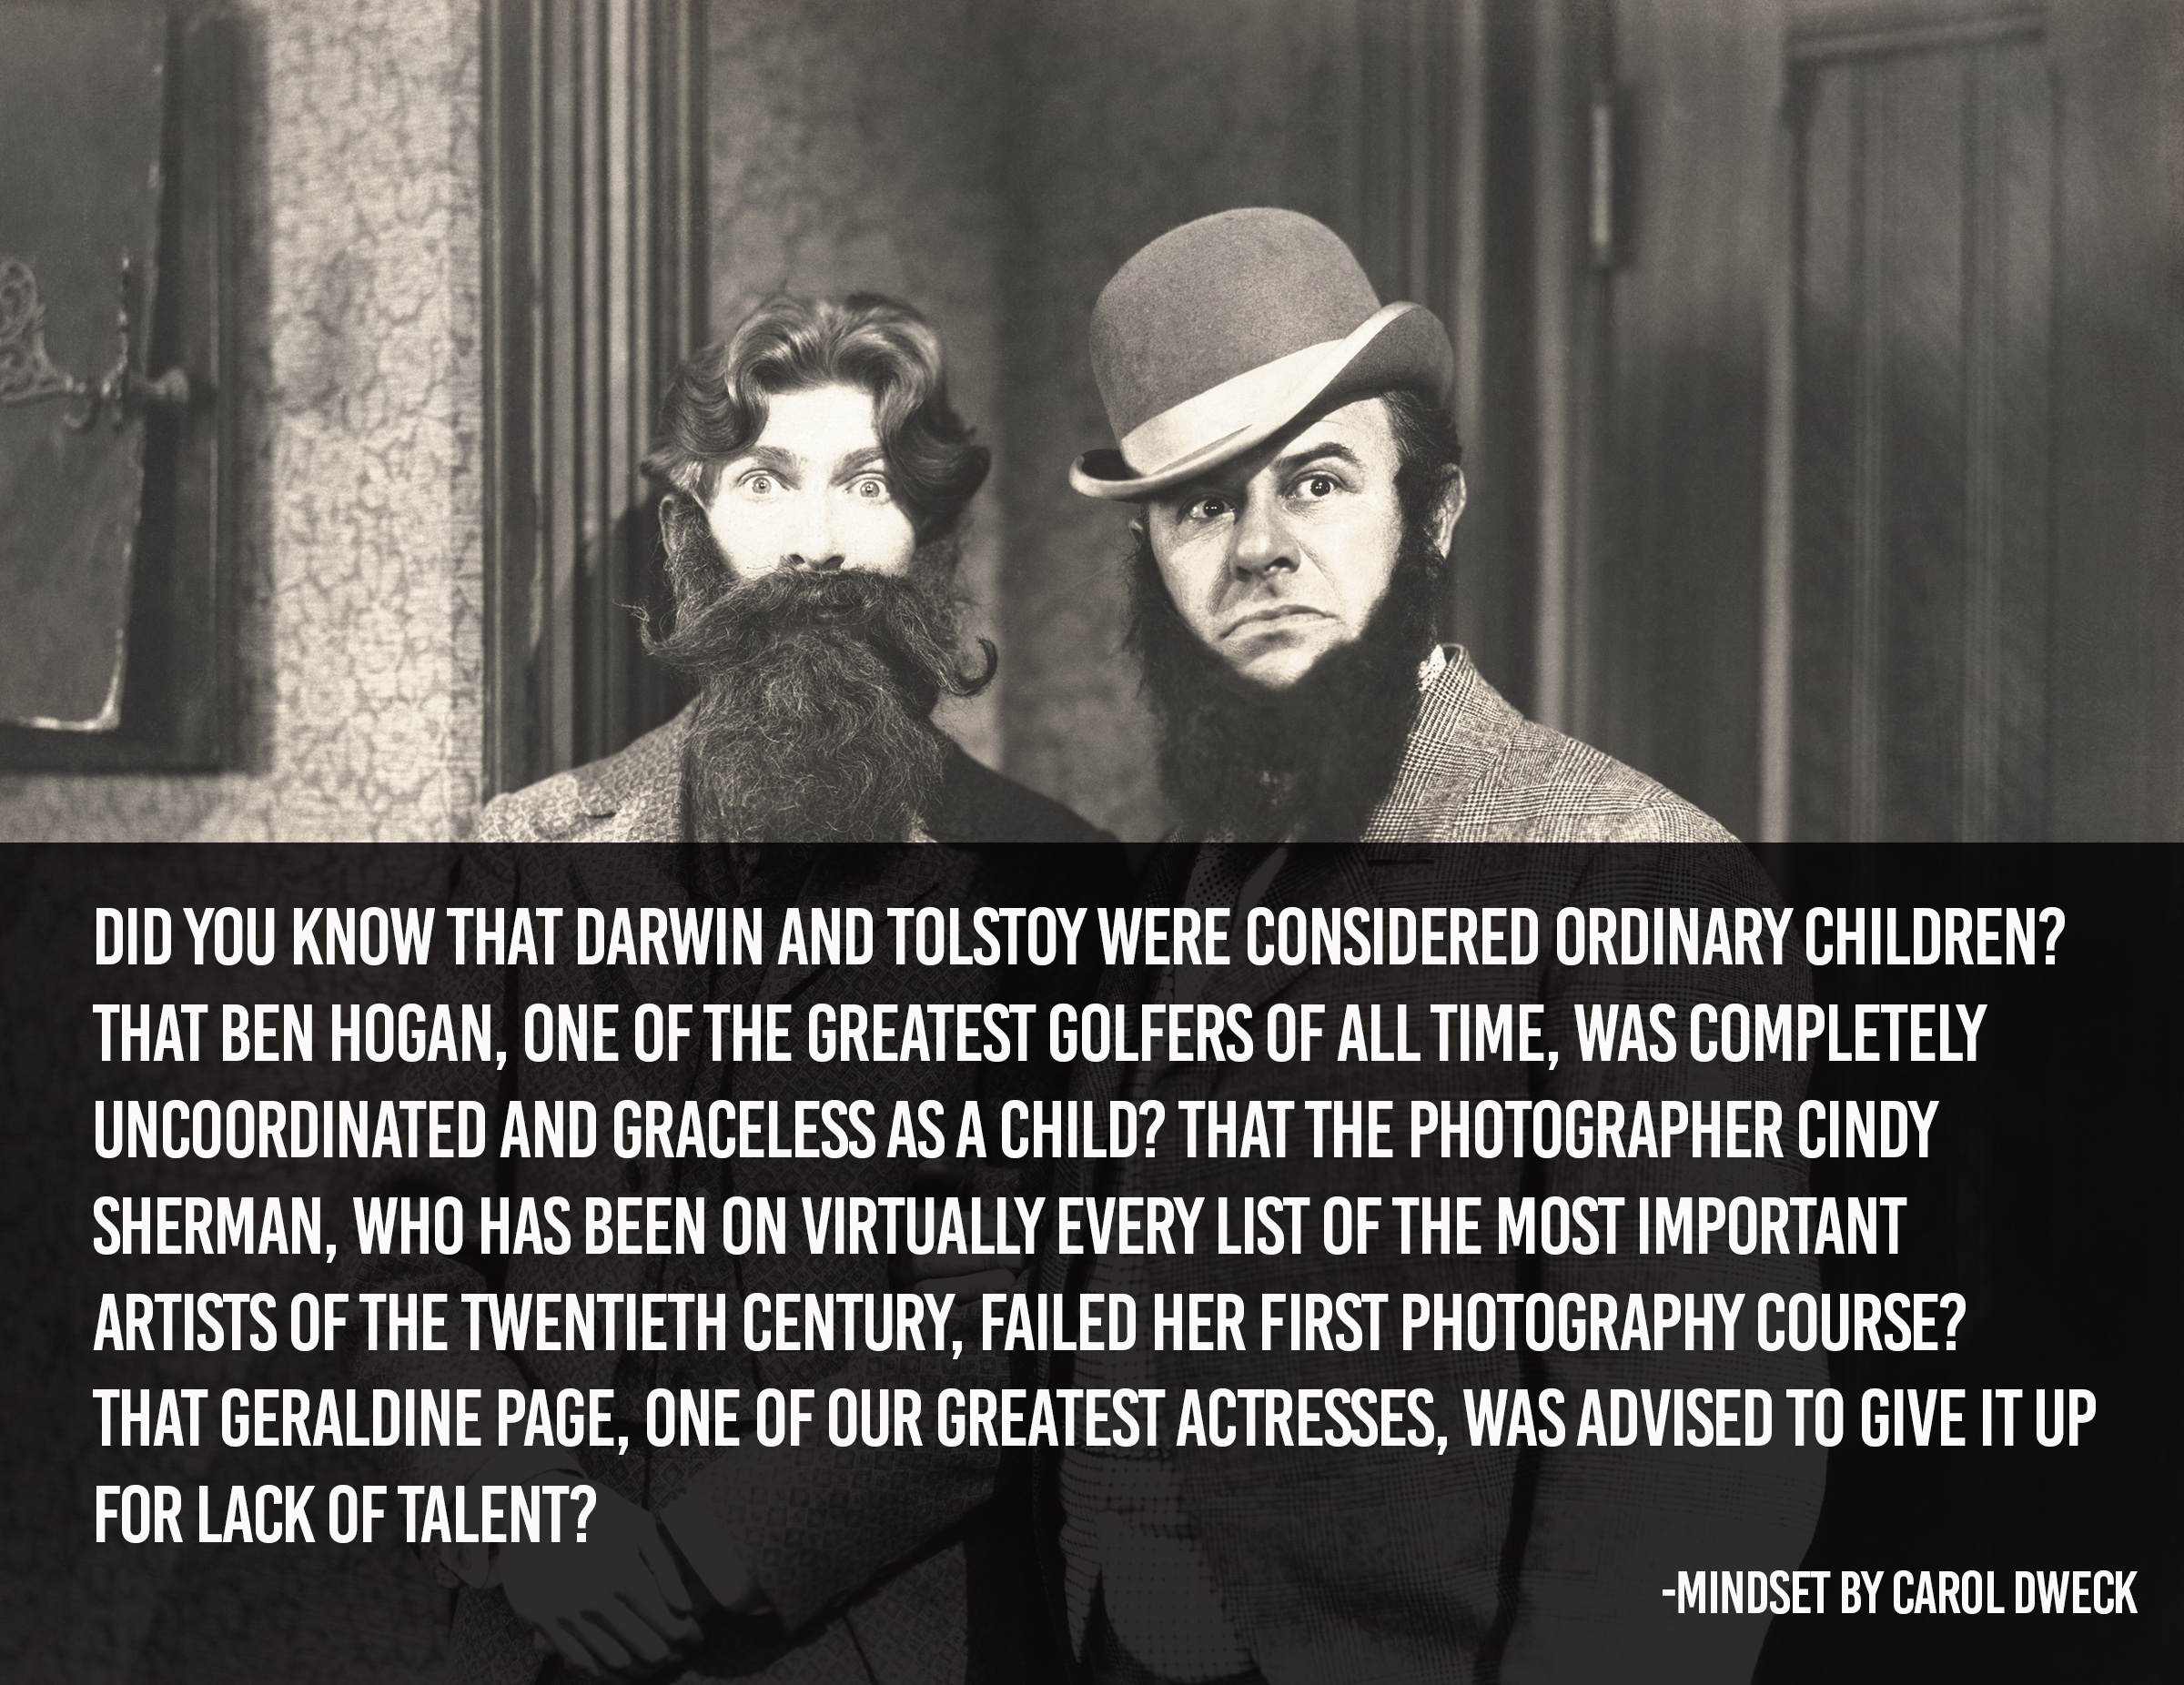 Did you know that Darwin and Tolstoy were considered ordinary children